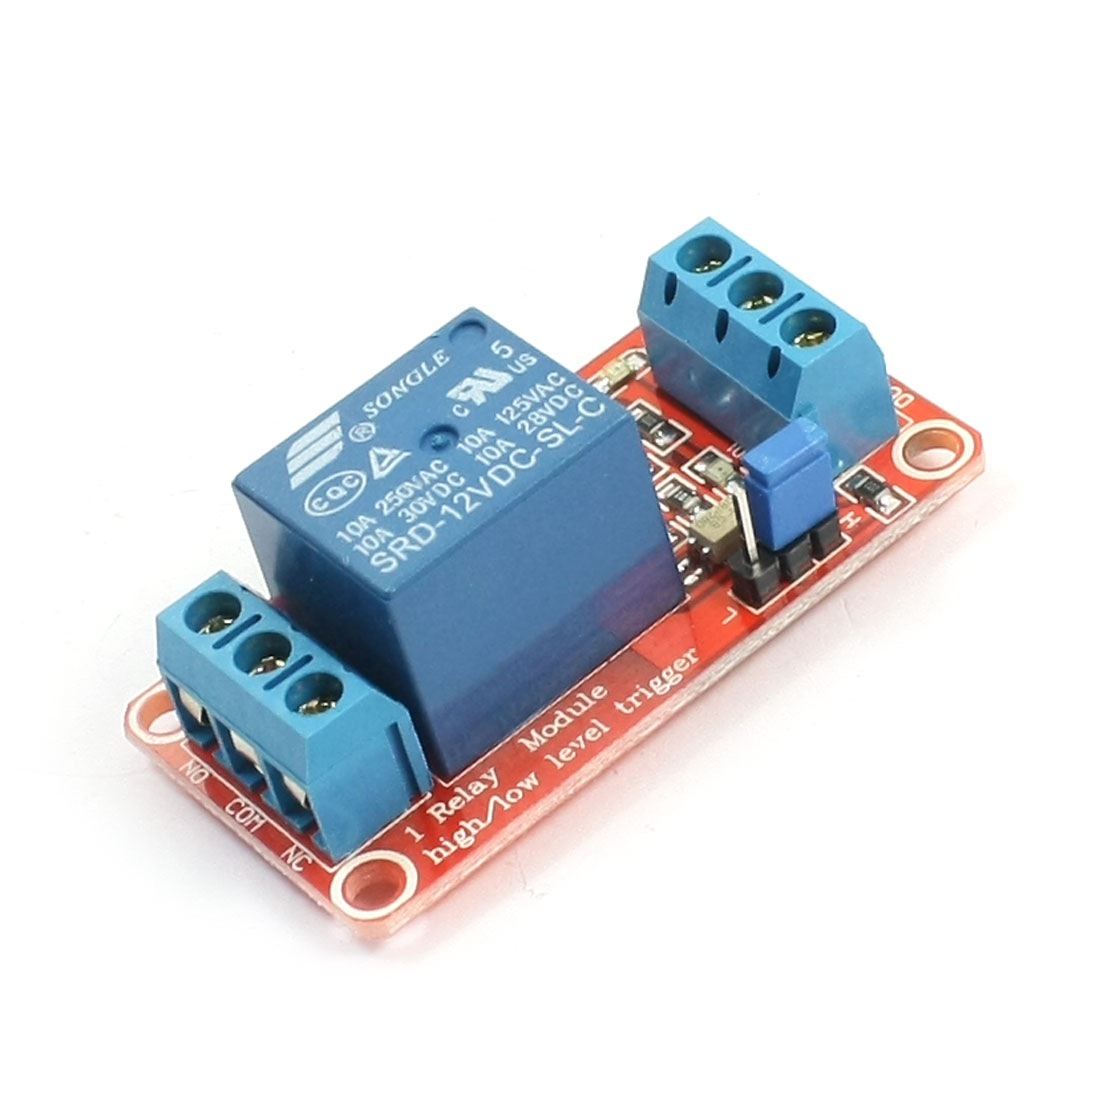 MCU Opto-isolator 1-Channel Power Relay Module Expansion Board DC 12V